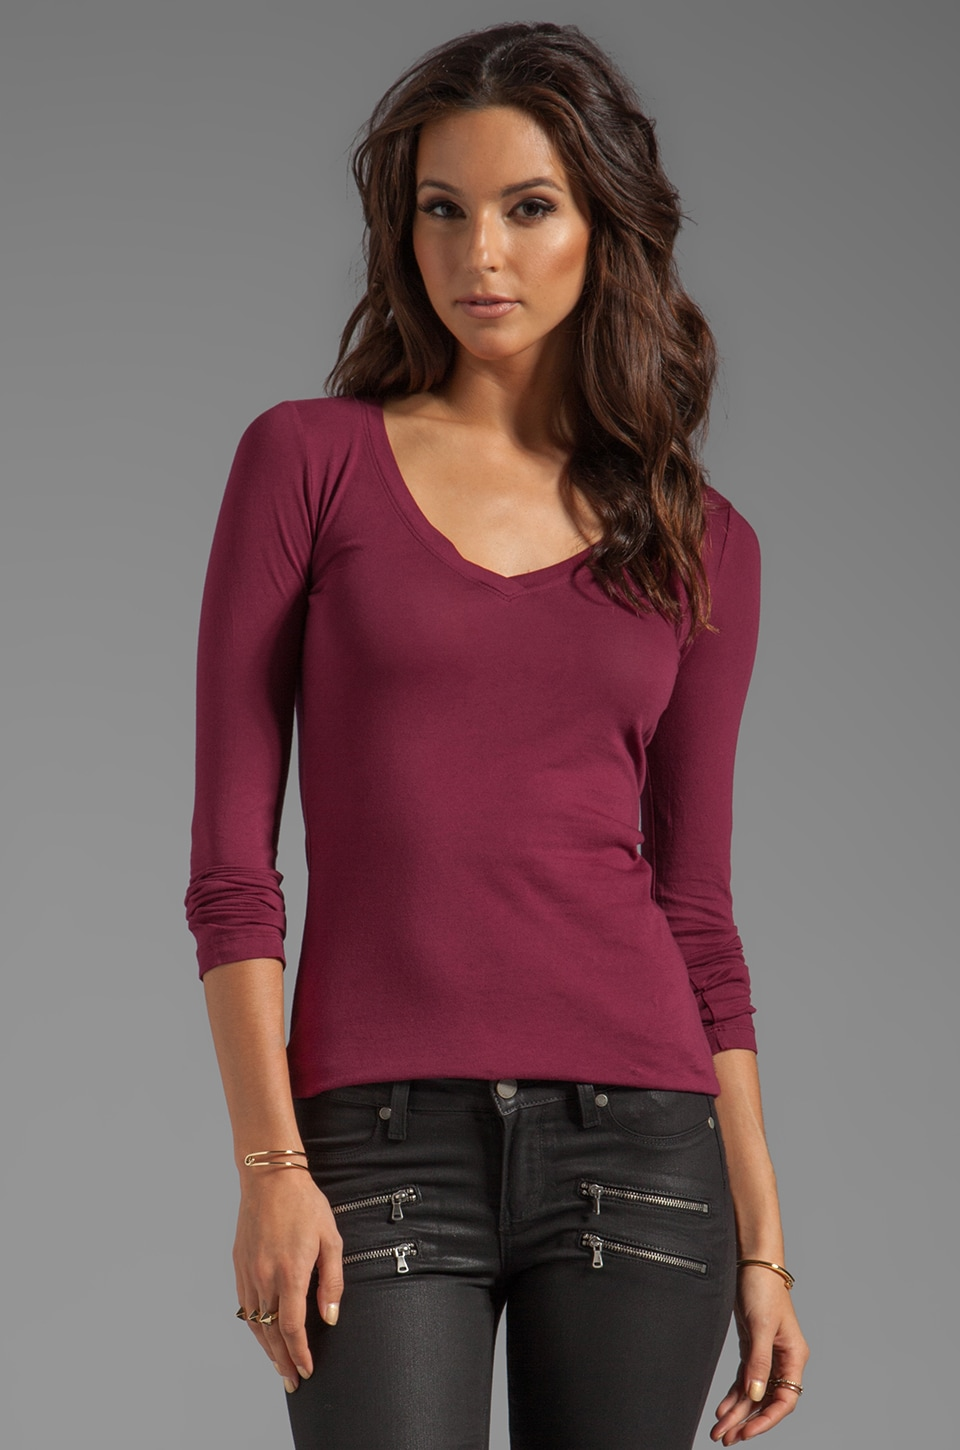 Bobi Light Weight Jersey Long Sleeve Tee in Merlot